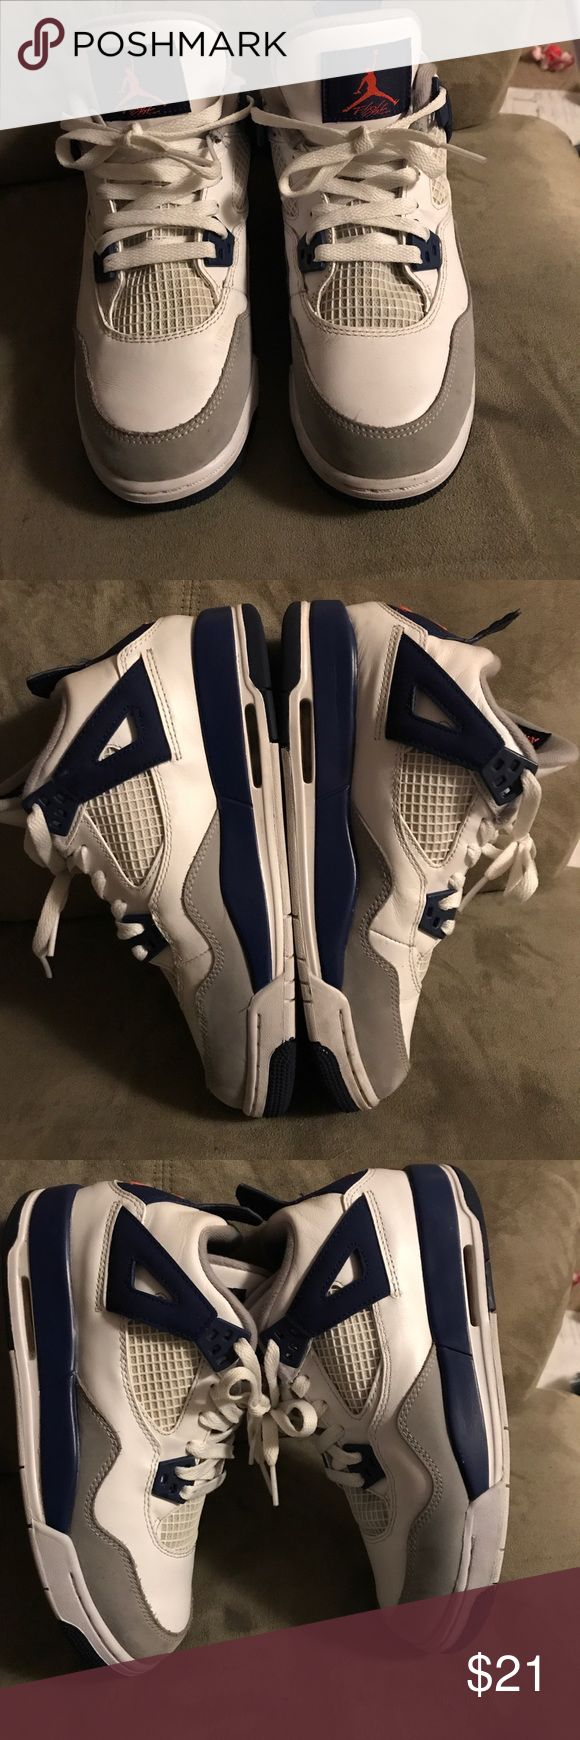 White, Gray, and Blue Air Jordan Flight‼️ 🔥🔥🔥🔥 White, Gray, and Blue Air Jordan Flight 👟👟‼️ 🔥🔥🔥🔥 Gently Used‼️ Size: 6Y Air Jordan Shoes Sneakers